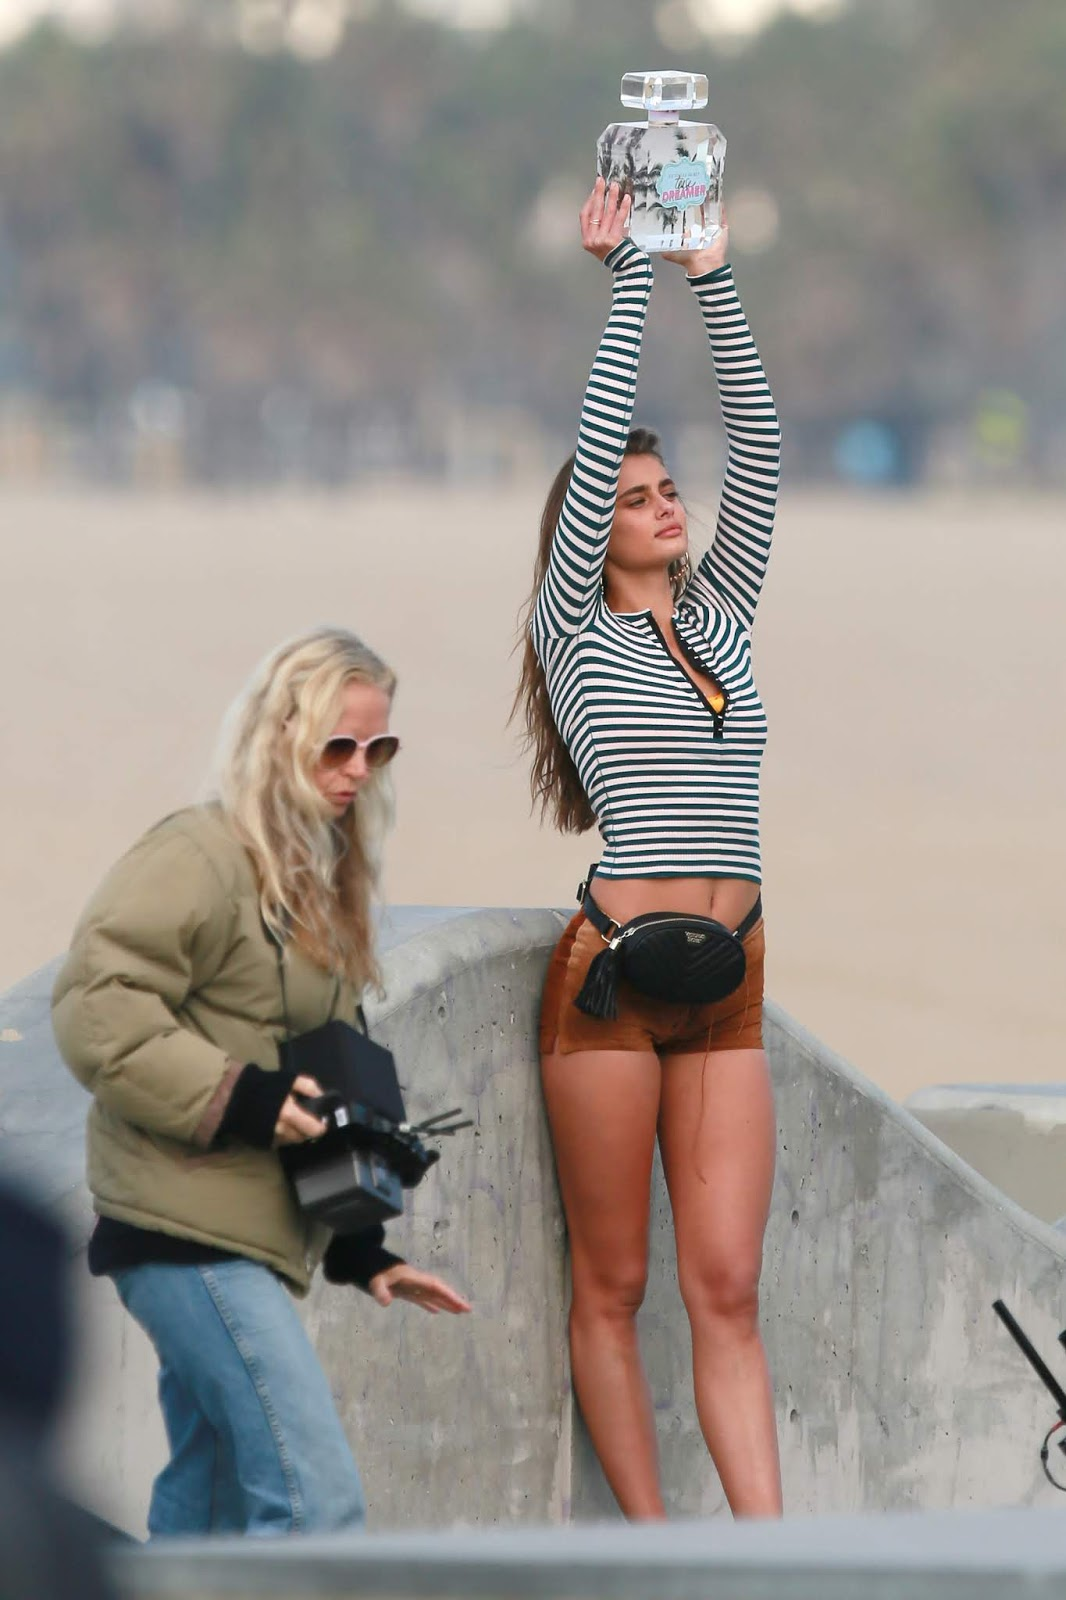 Taylor Hill shoots a new Tease Dreamer perfume commercial for Victoria's Secret in Venice Beach